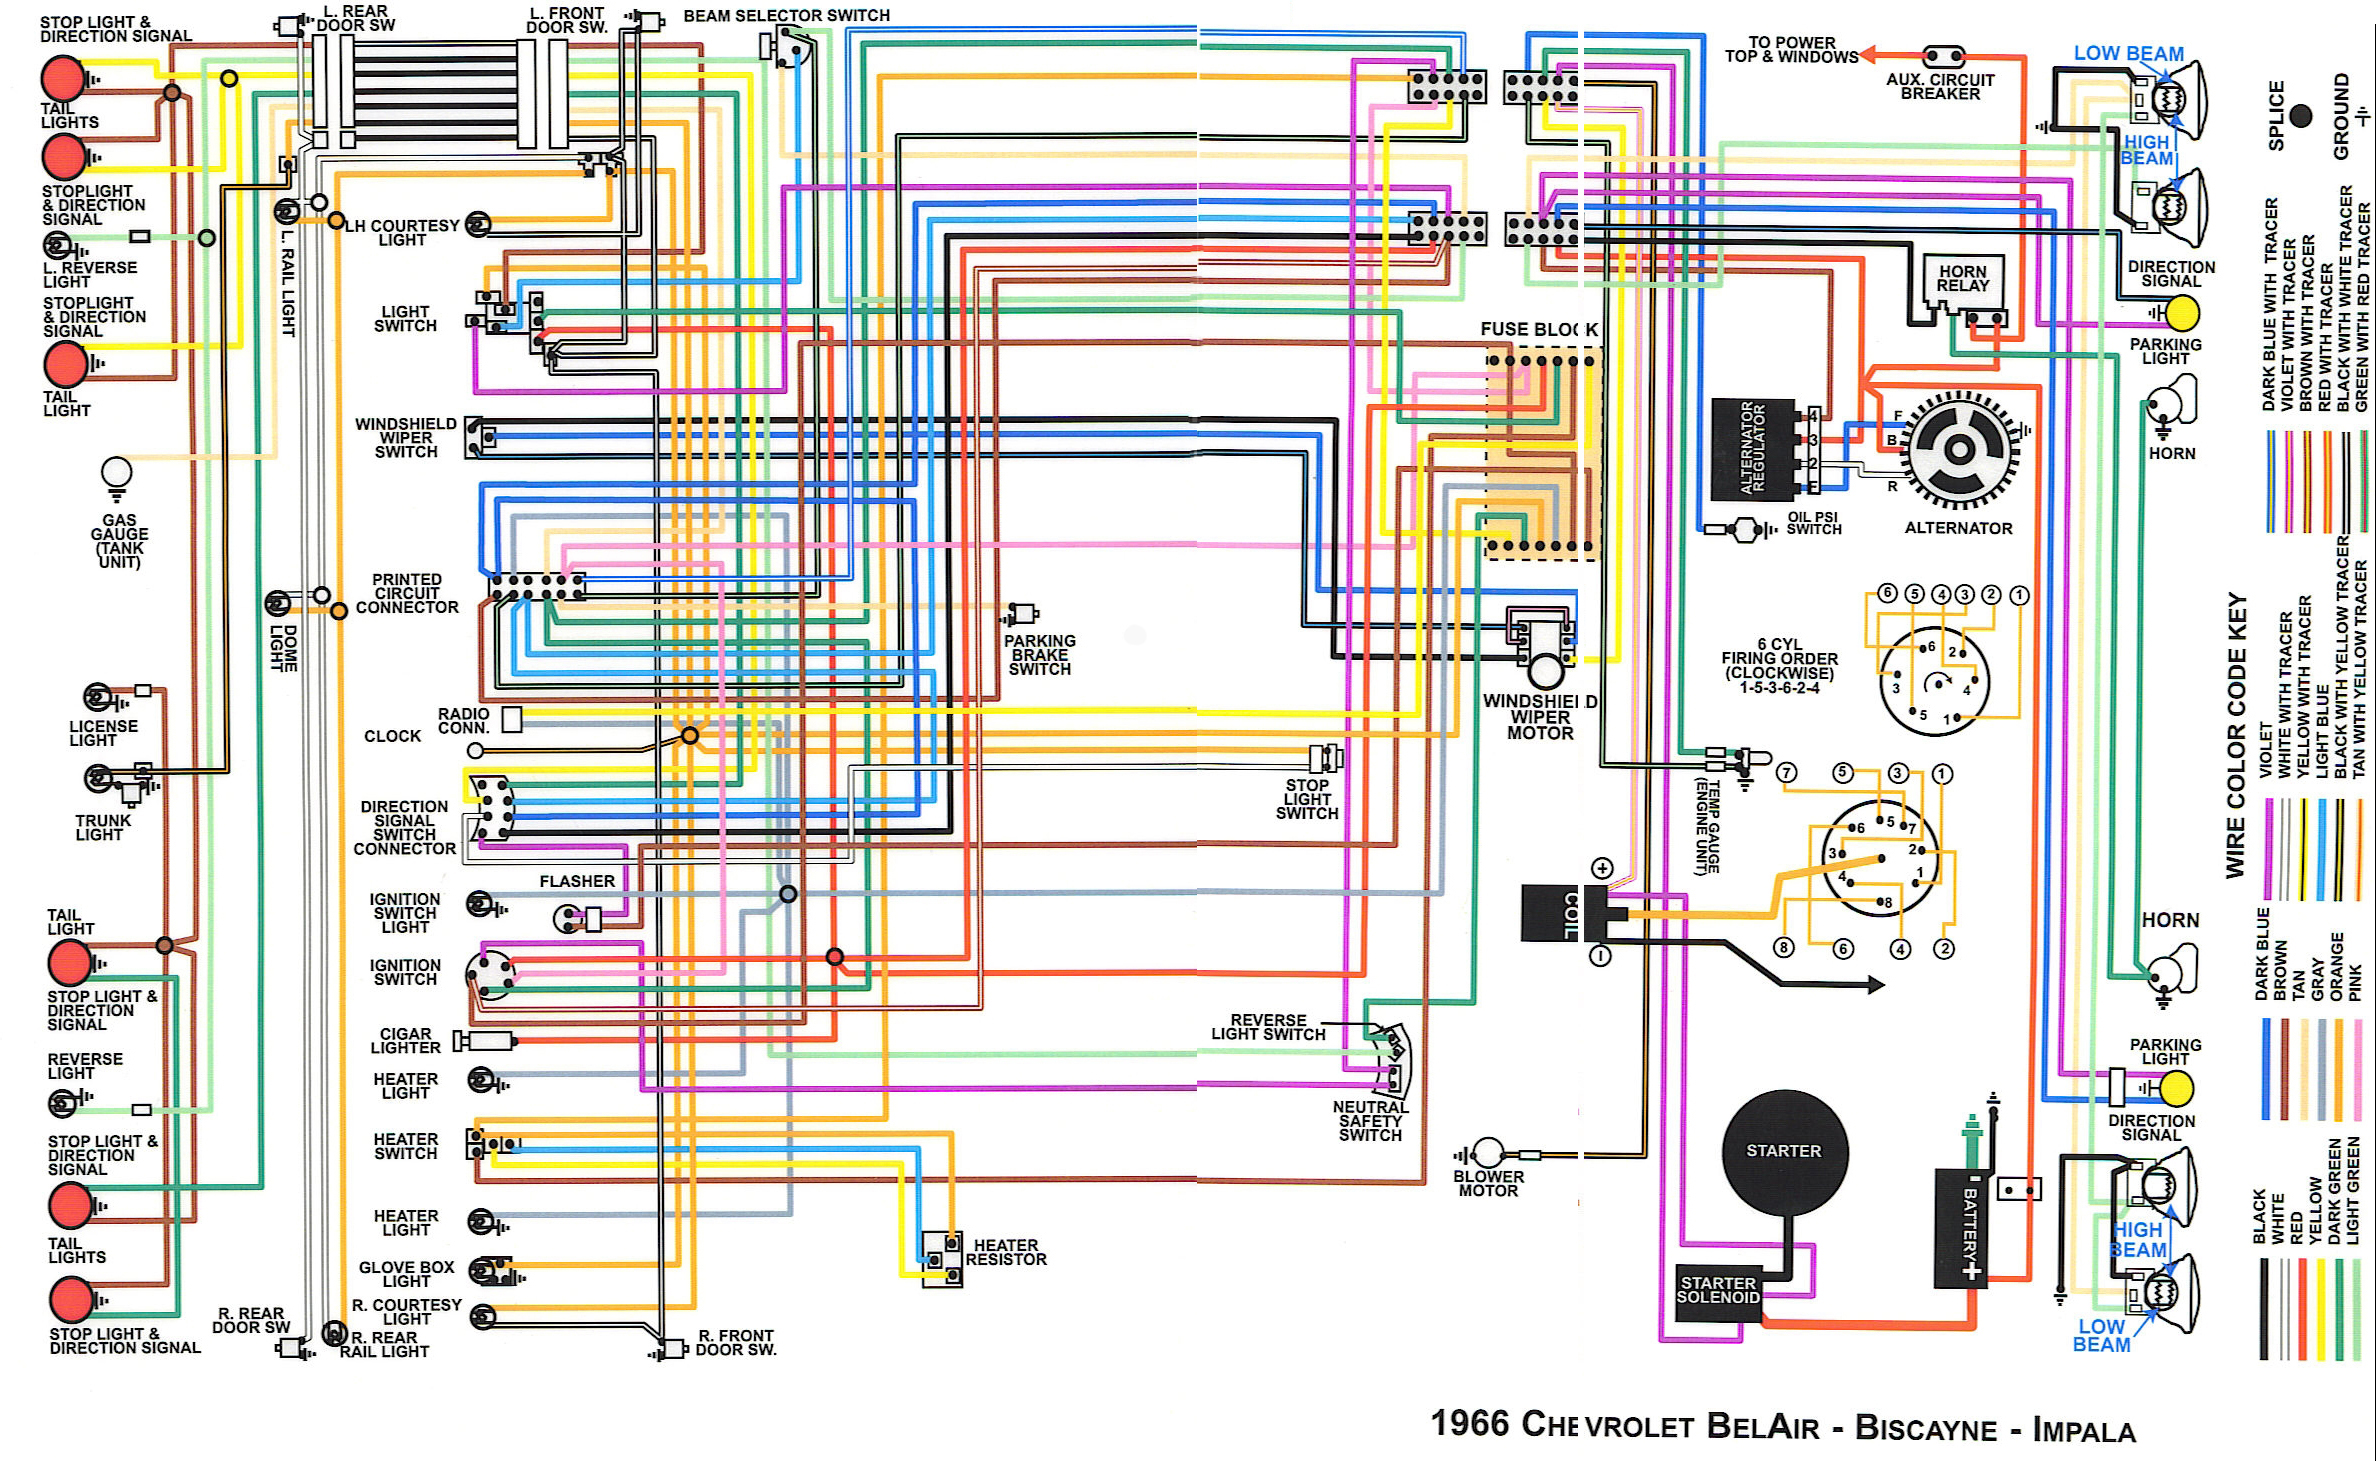 wiring diagram for 1967 chevelle wiring diagram tutorial 1965 Chevy Impala Wiring Diagram 1968 camaro wiper wiring diagram 1970 gm electrical wiring wiring diagram update1970 gm electrical wiring wiring diagram add breaker box wiring